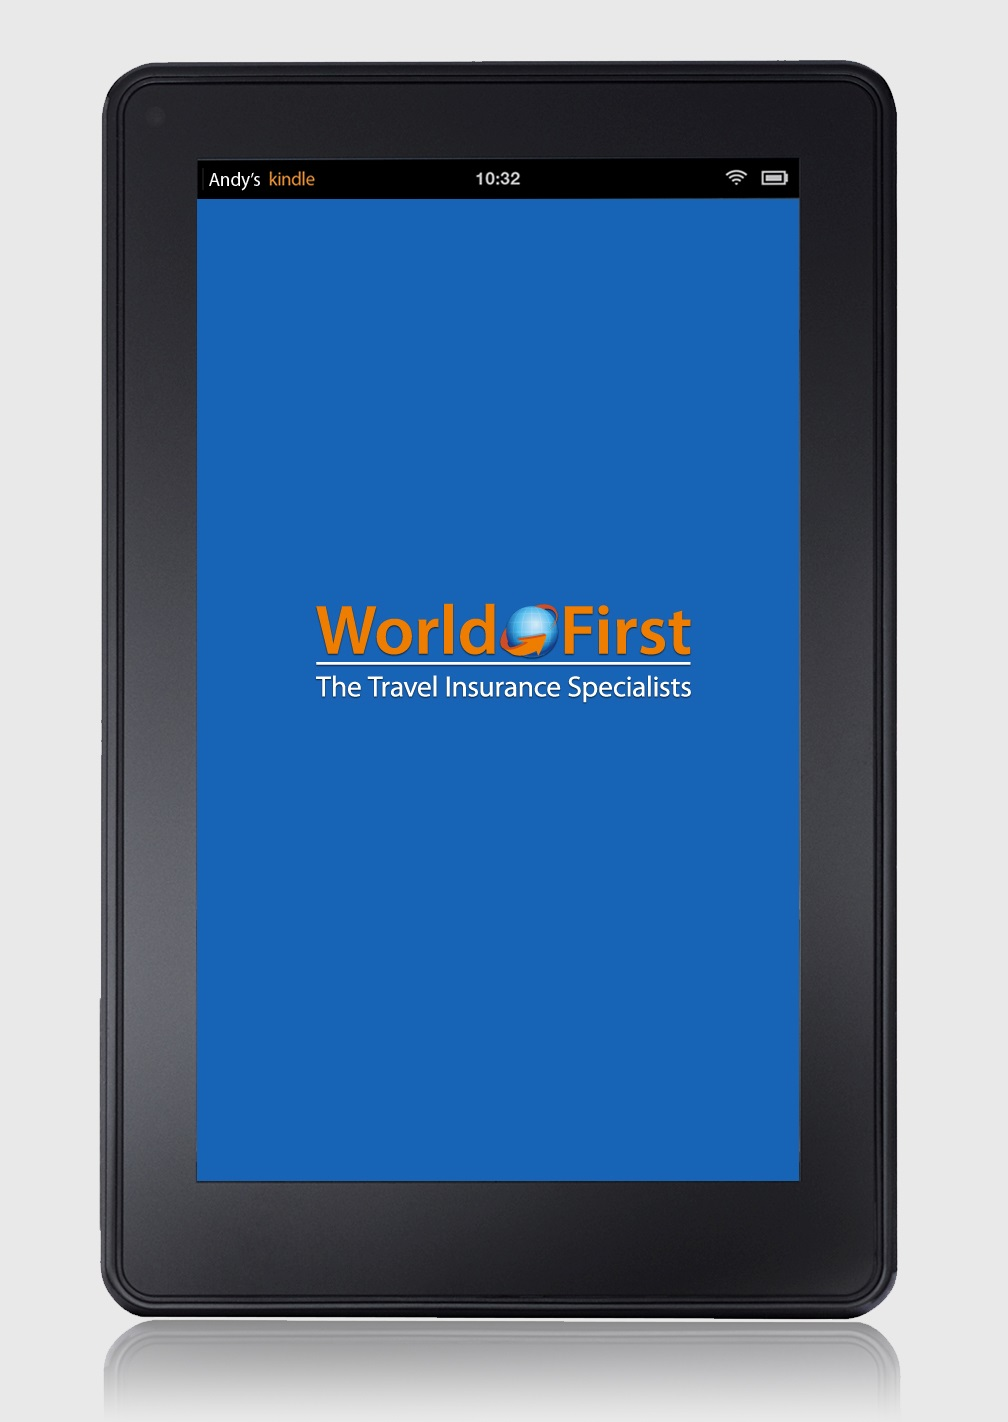 Win A Kindle Fire Hd In The World First Travel Survey